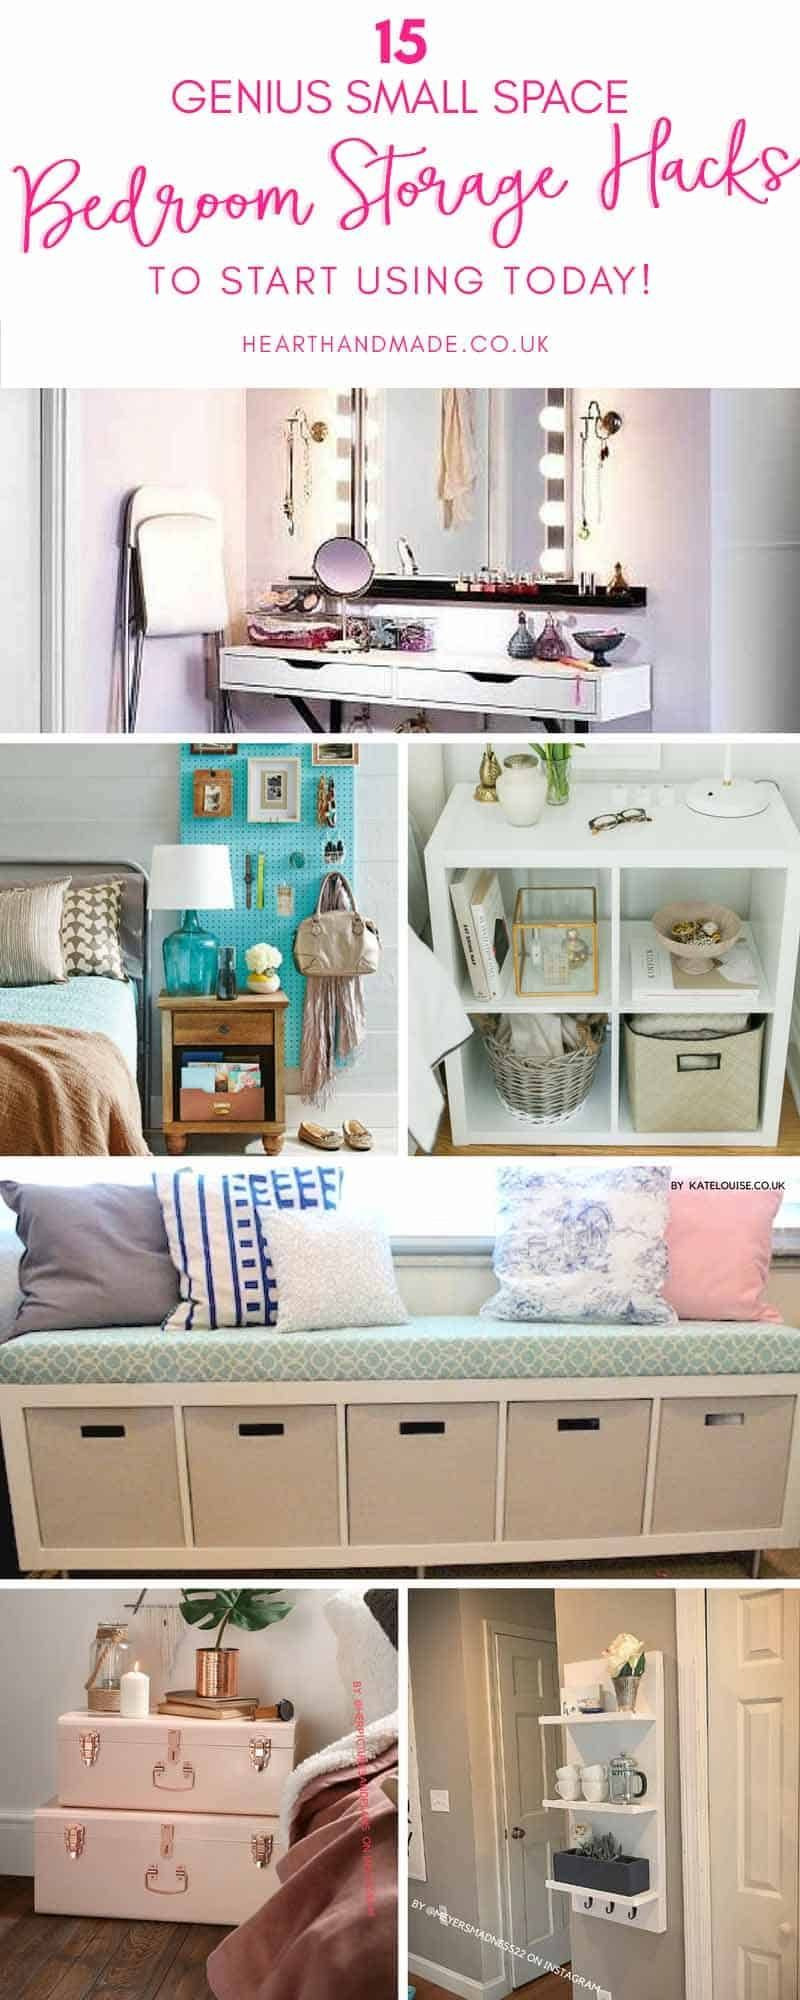 Are you in need of some genius bedroom storage ideas? in 10